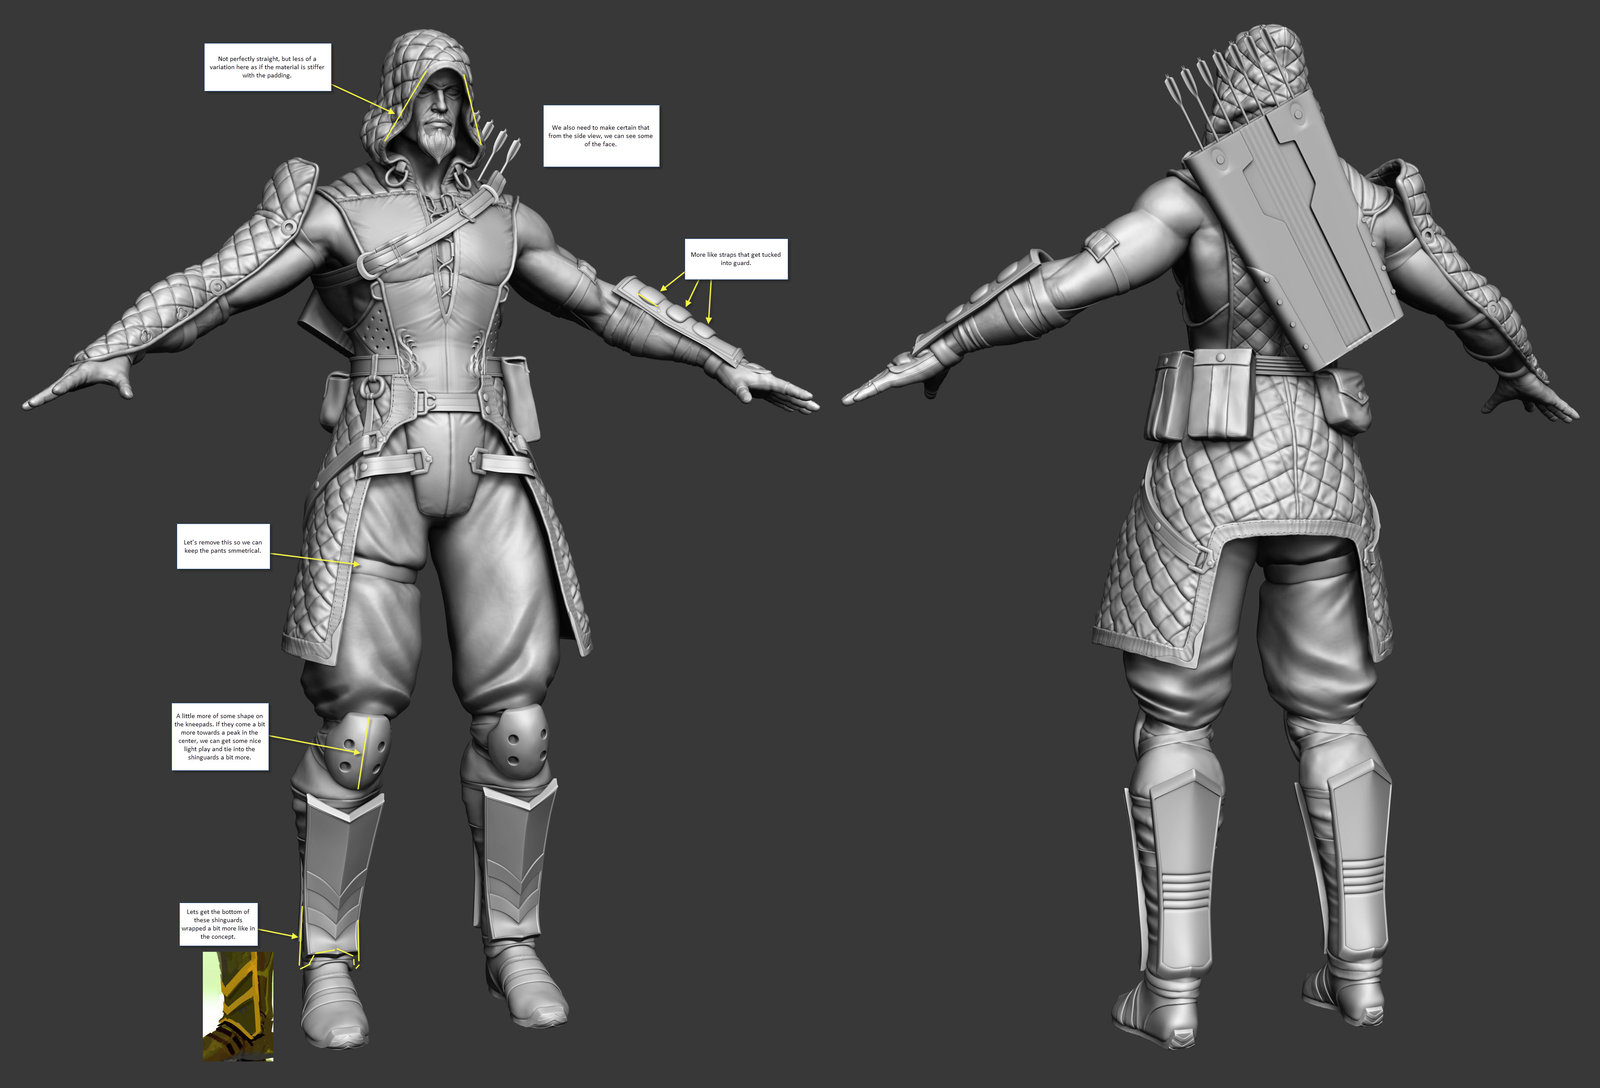 WIPS on the creation of character, and comments on what worked best, or looked better.